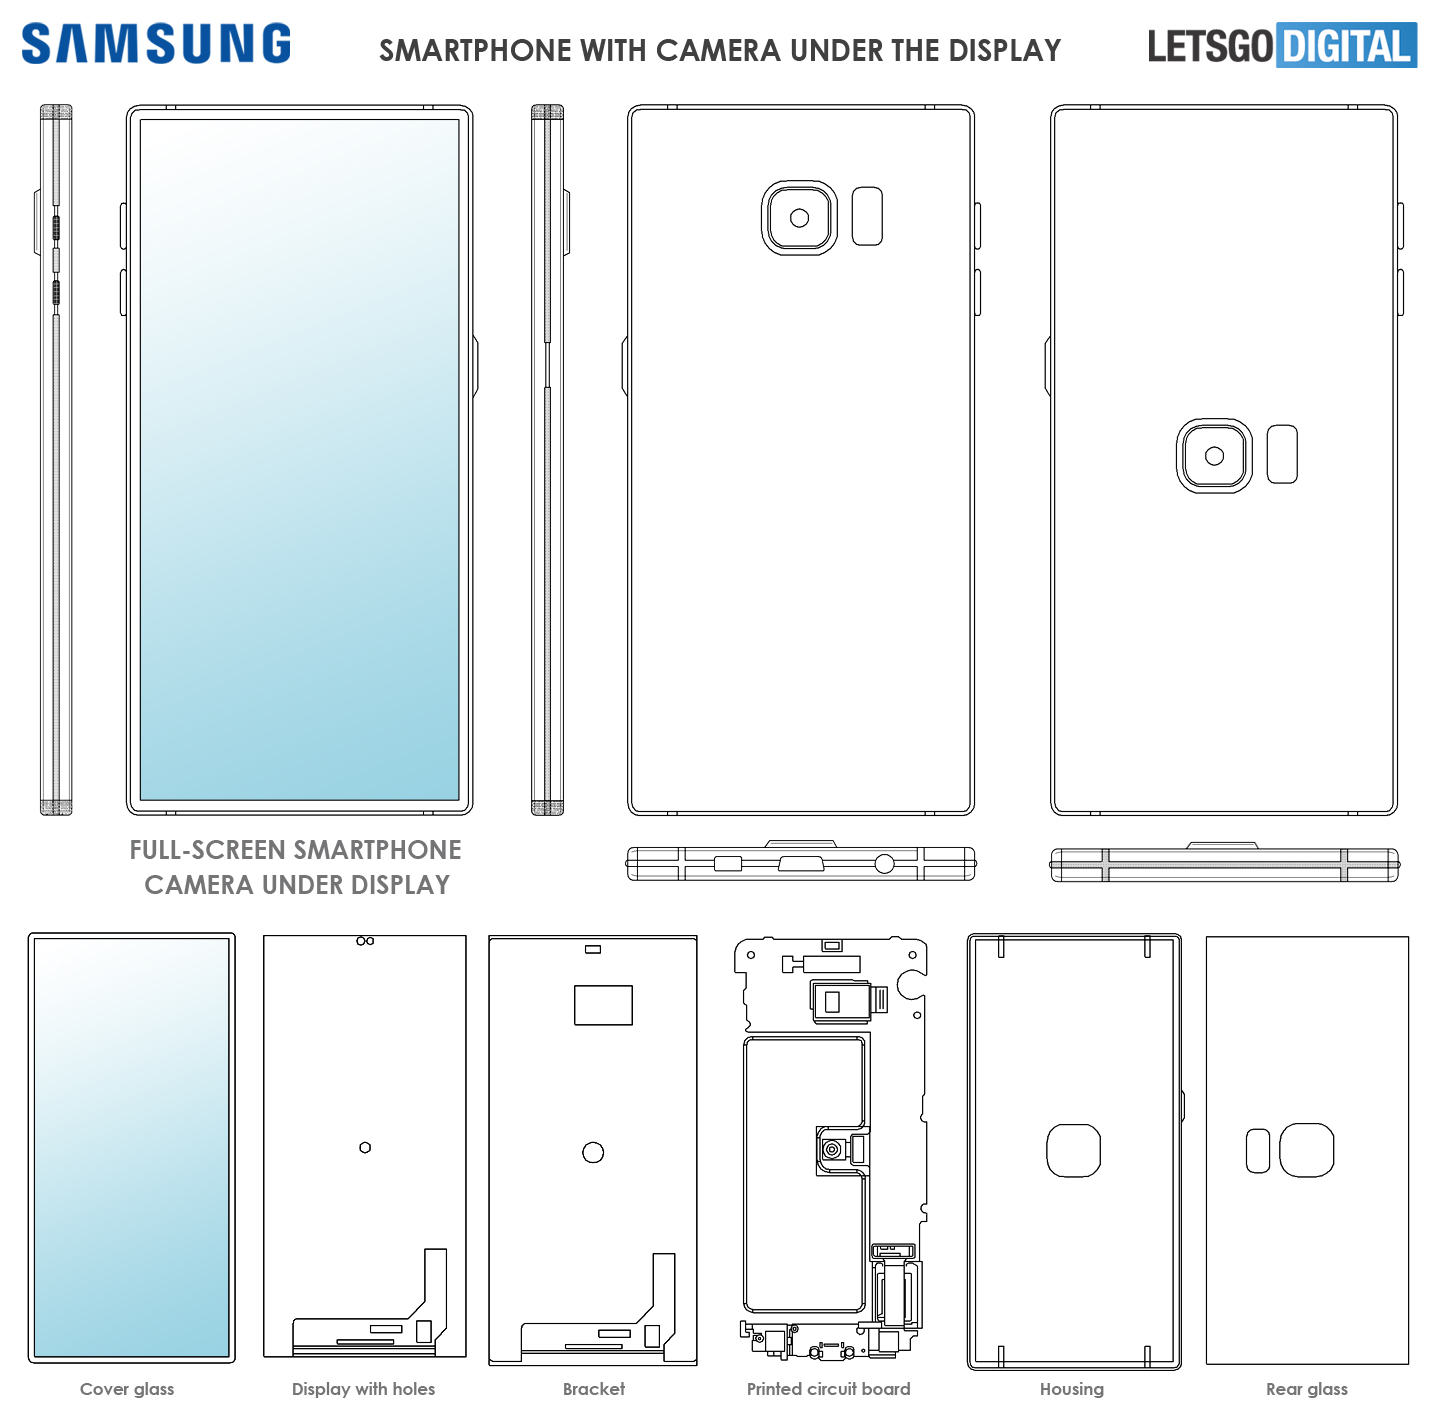 Samsung smartphone met camera onder display